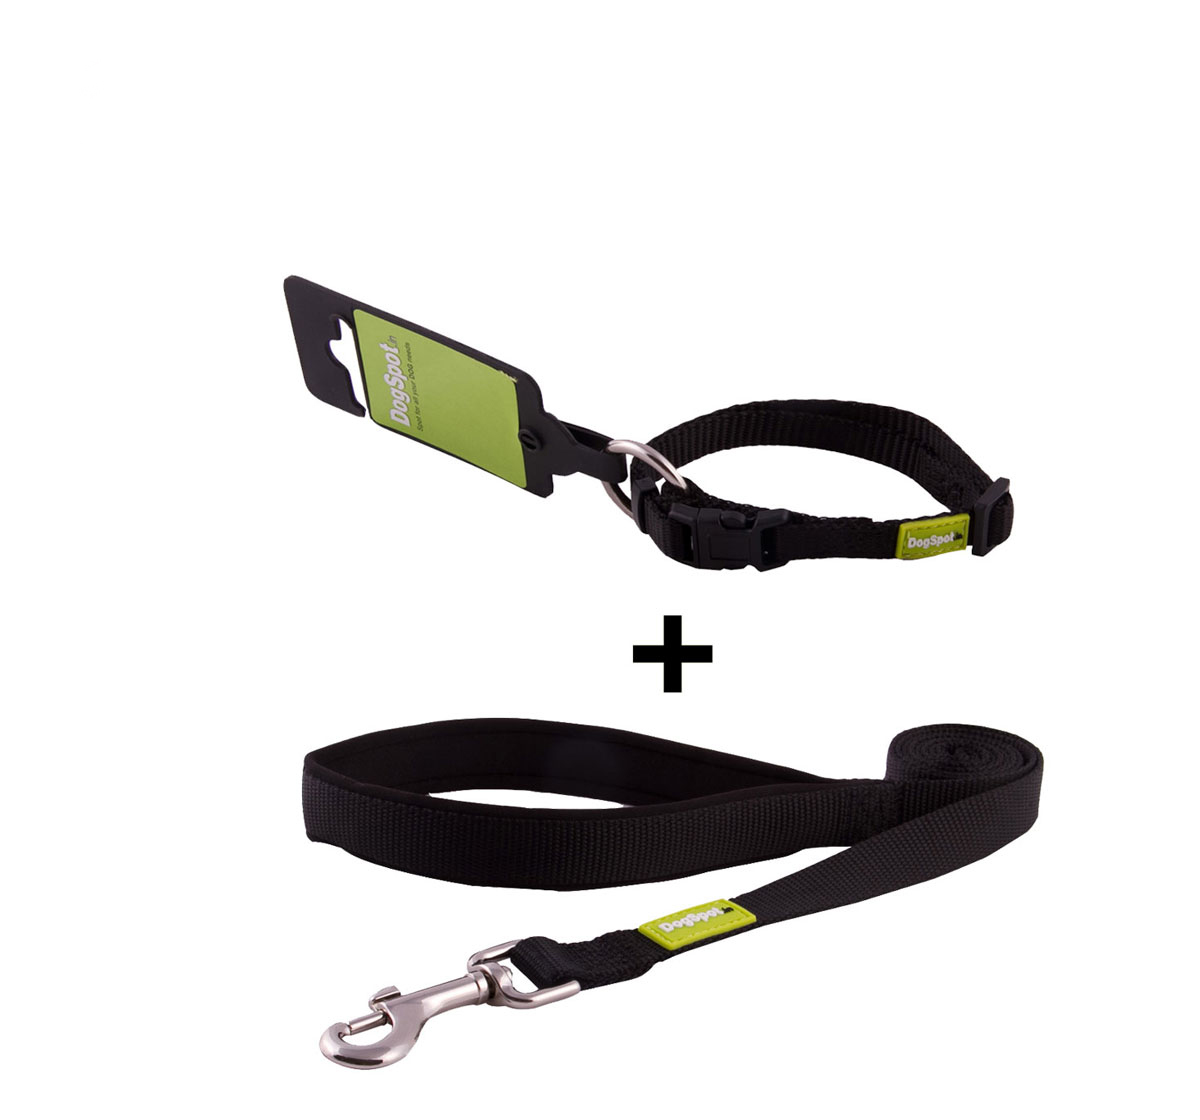 DogSpot Premium Leash and Collar Set Black 10 mm - Xsmall